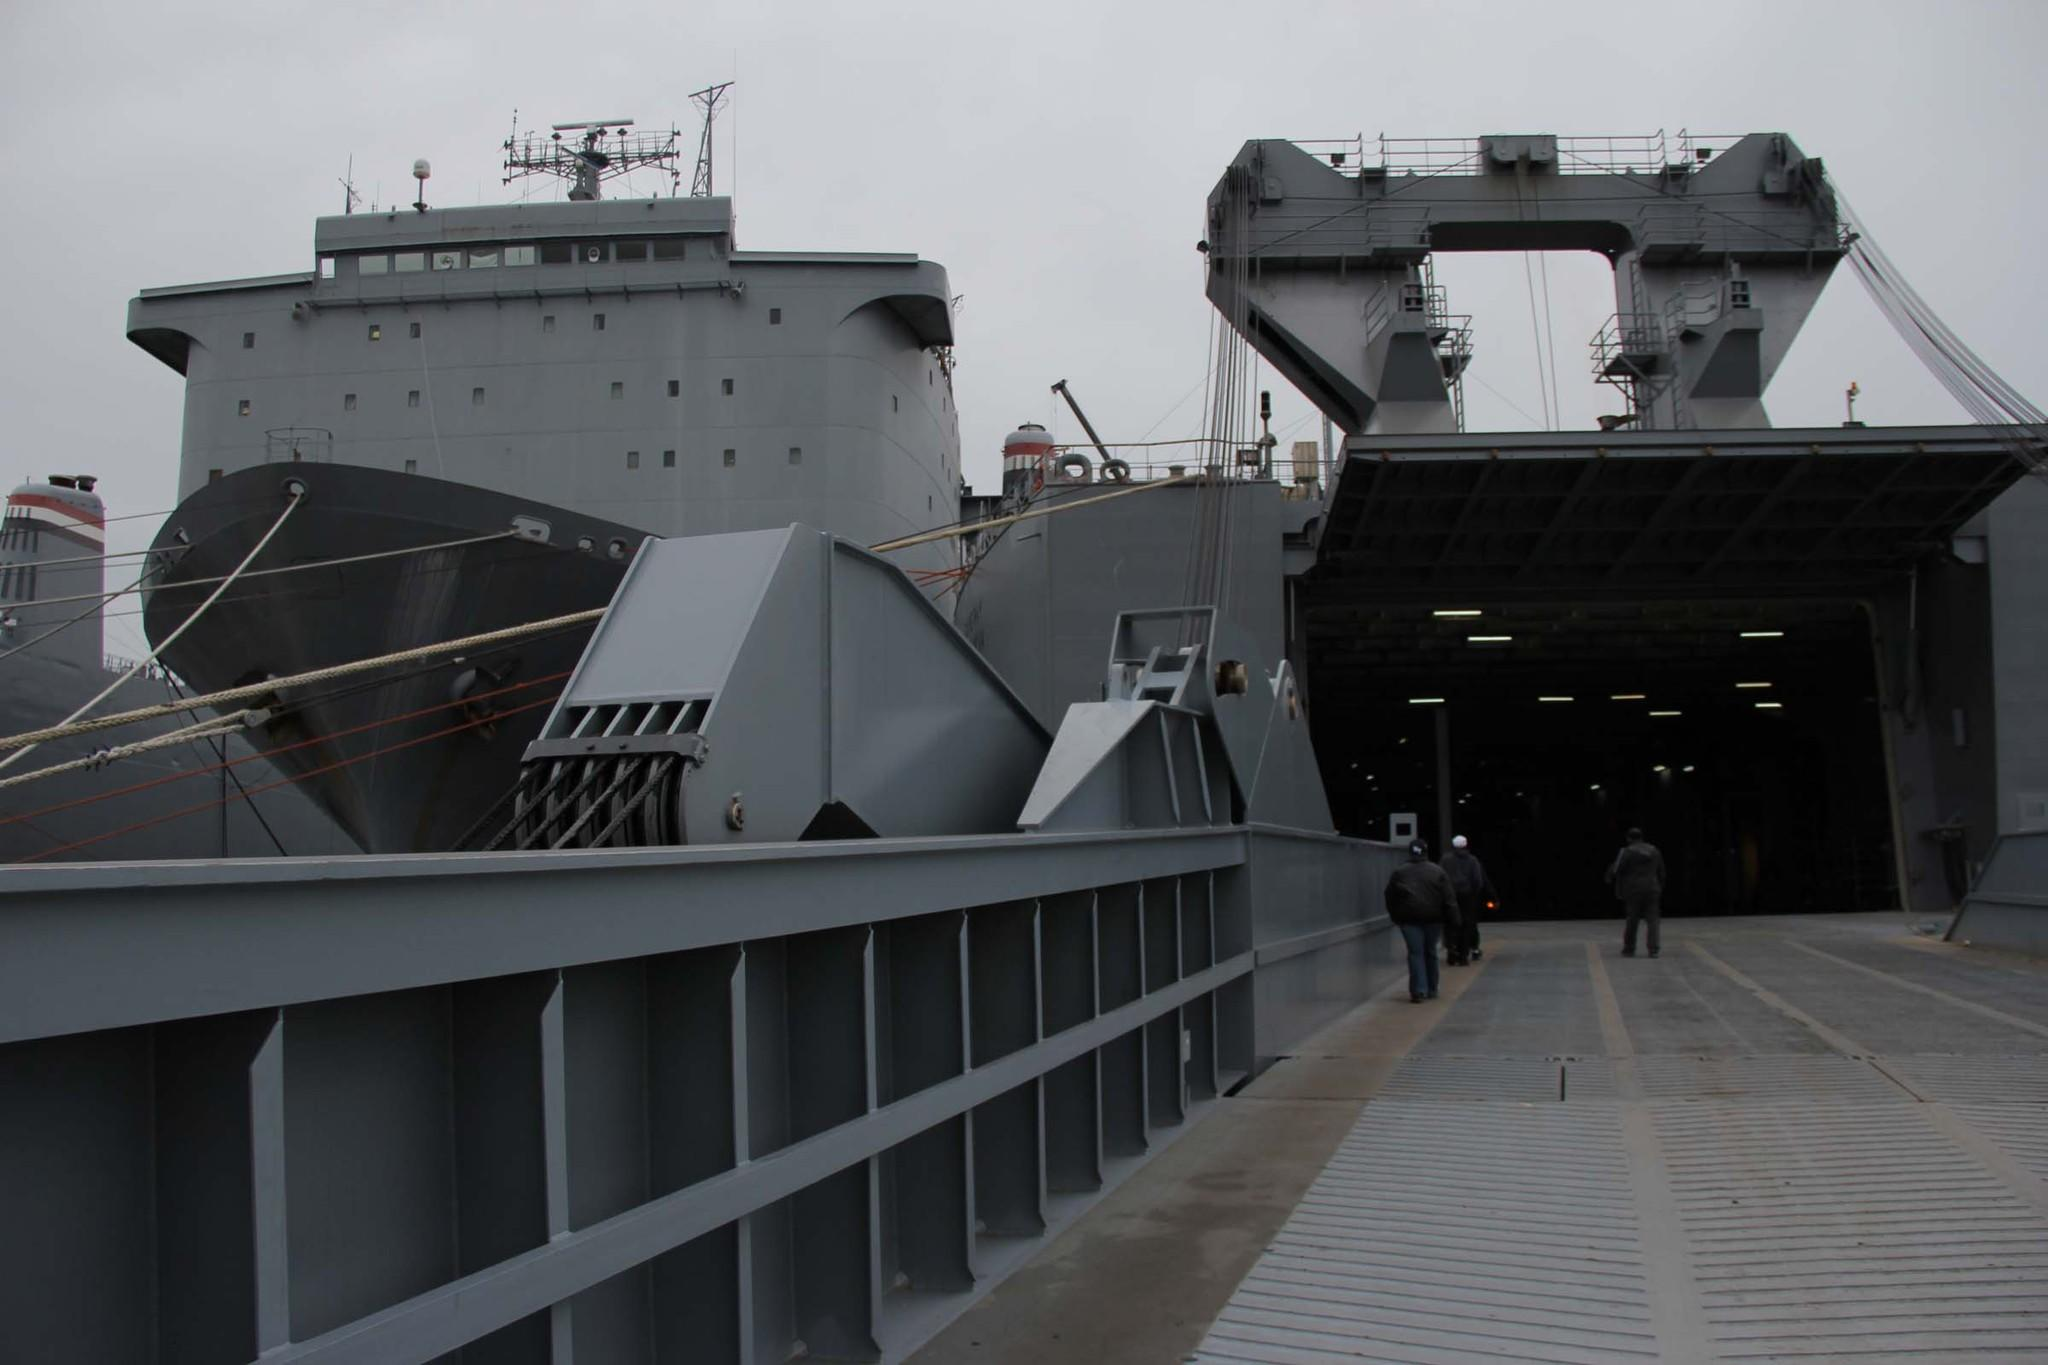 Some Edgewood Chemical Biological Center staff are aboard the container ship MV Cape Ray at a naval station in Rota, Spain, awaiting orders to assist with destroying Syrian chemical weapons.